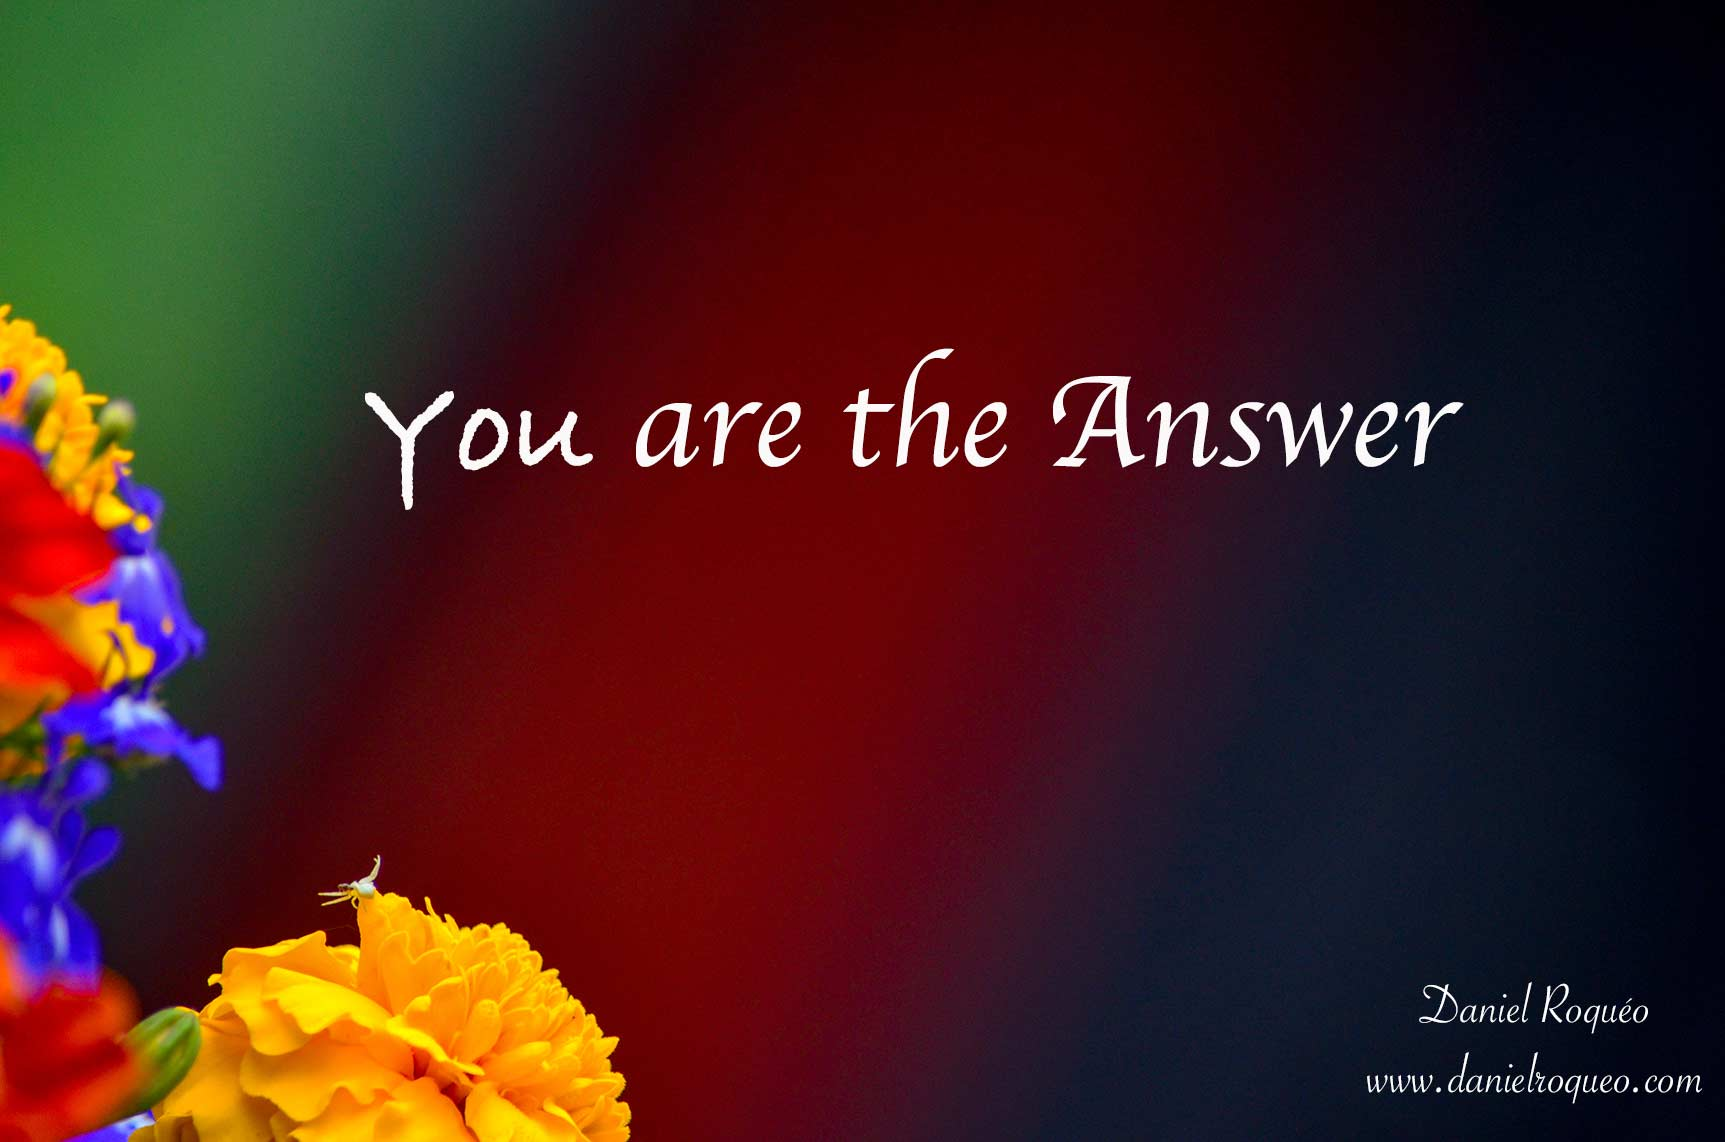 Spiritual counseling is about you realizing that you are the answer